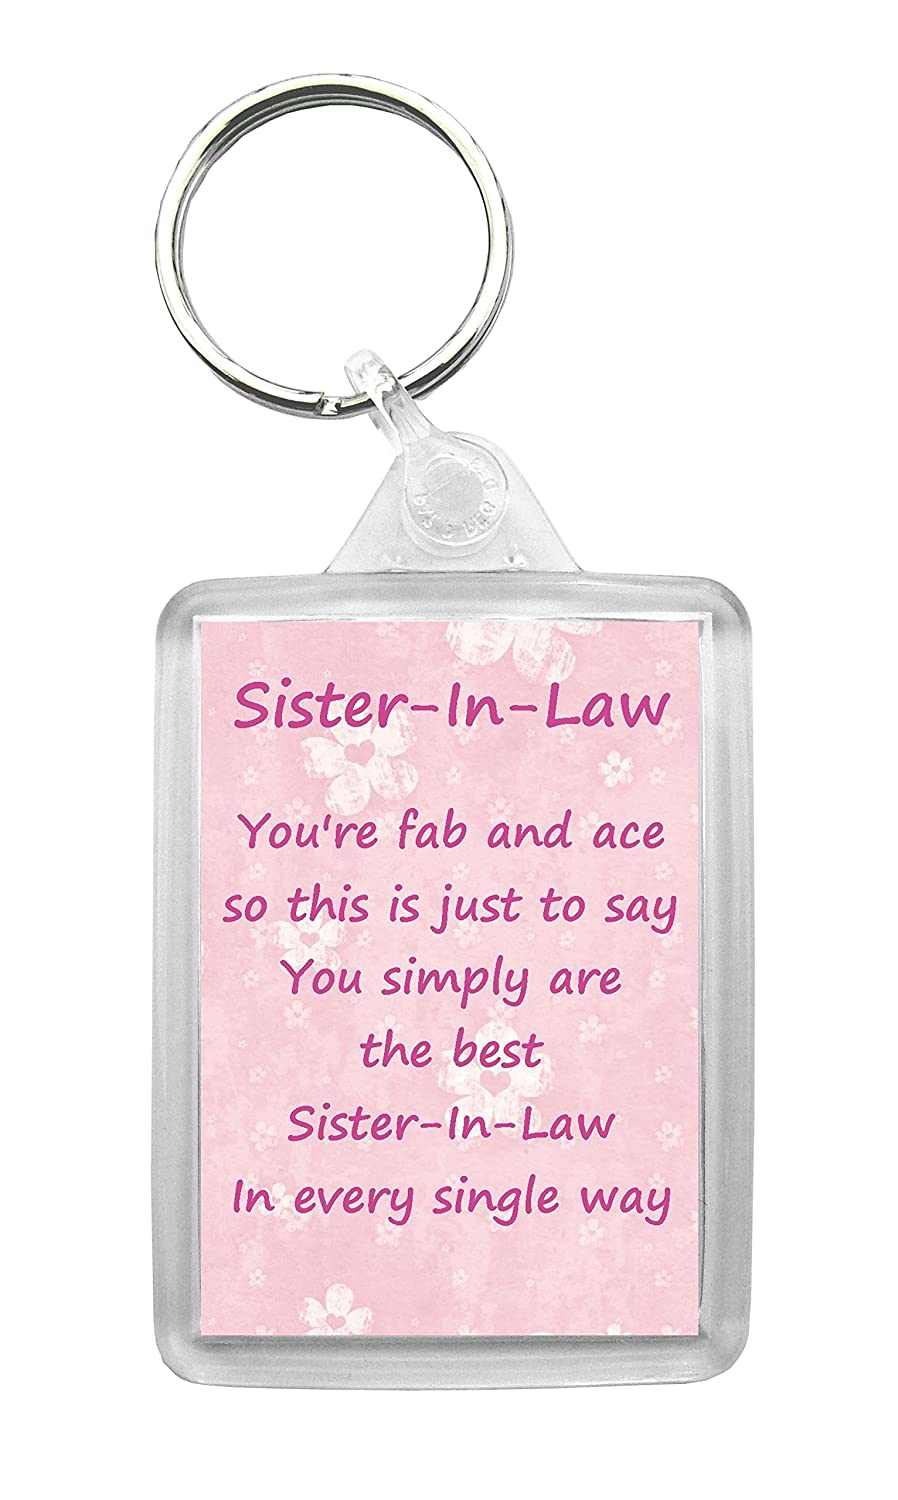 Sister-In-Law Keyring Fun Novelty Birthday Anniversary Christmas ...